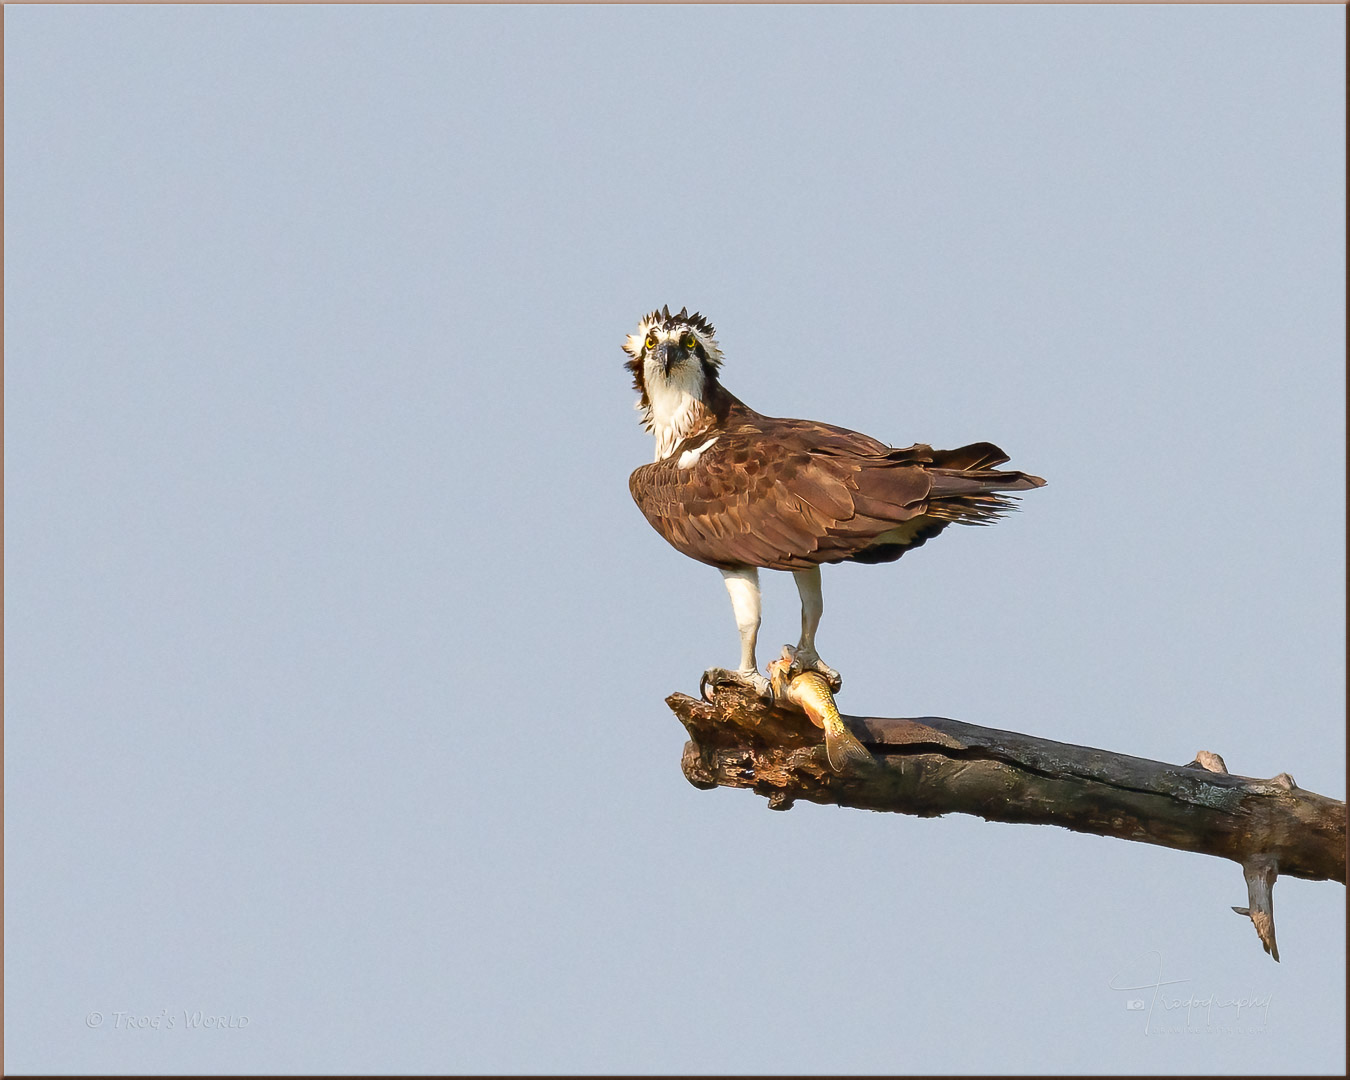 Osprey on a perch with a fish